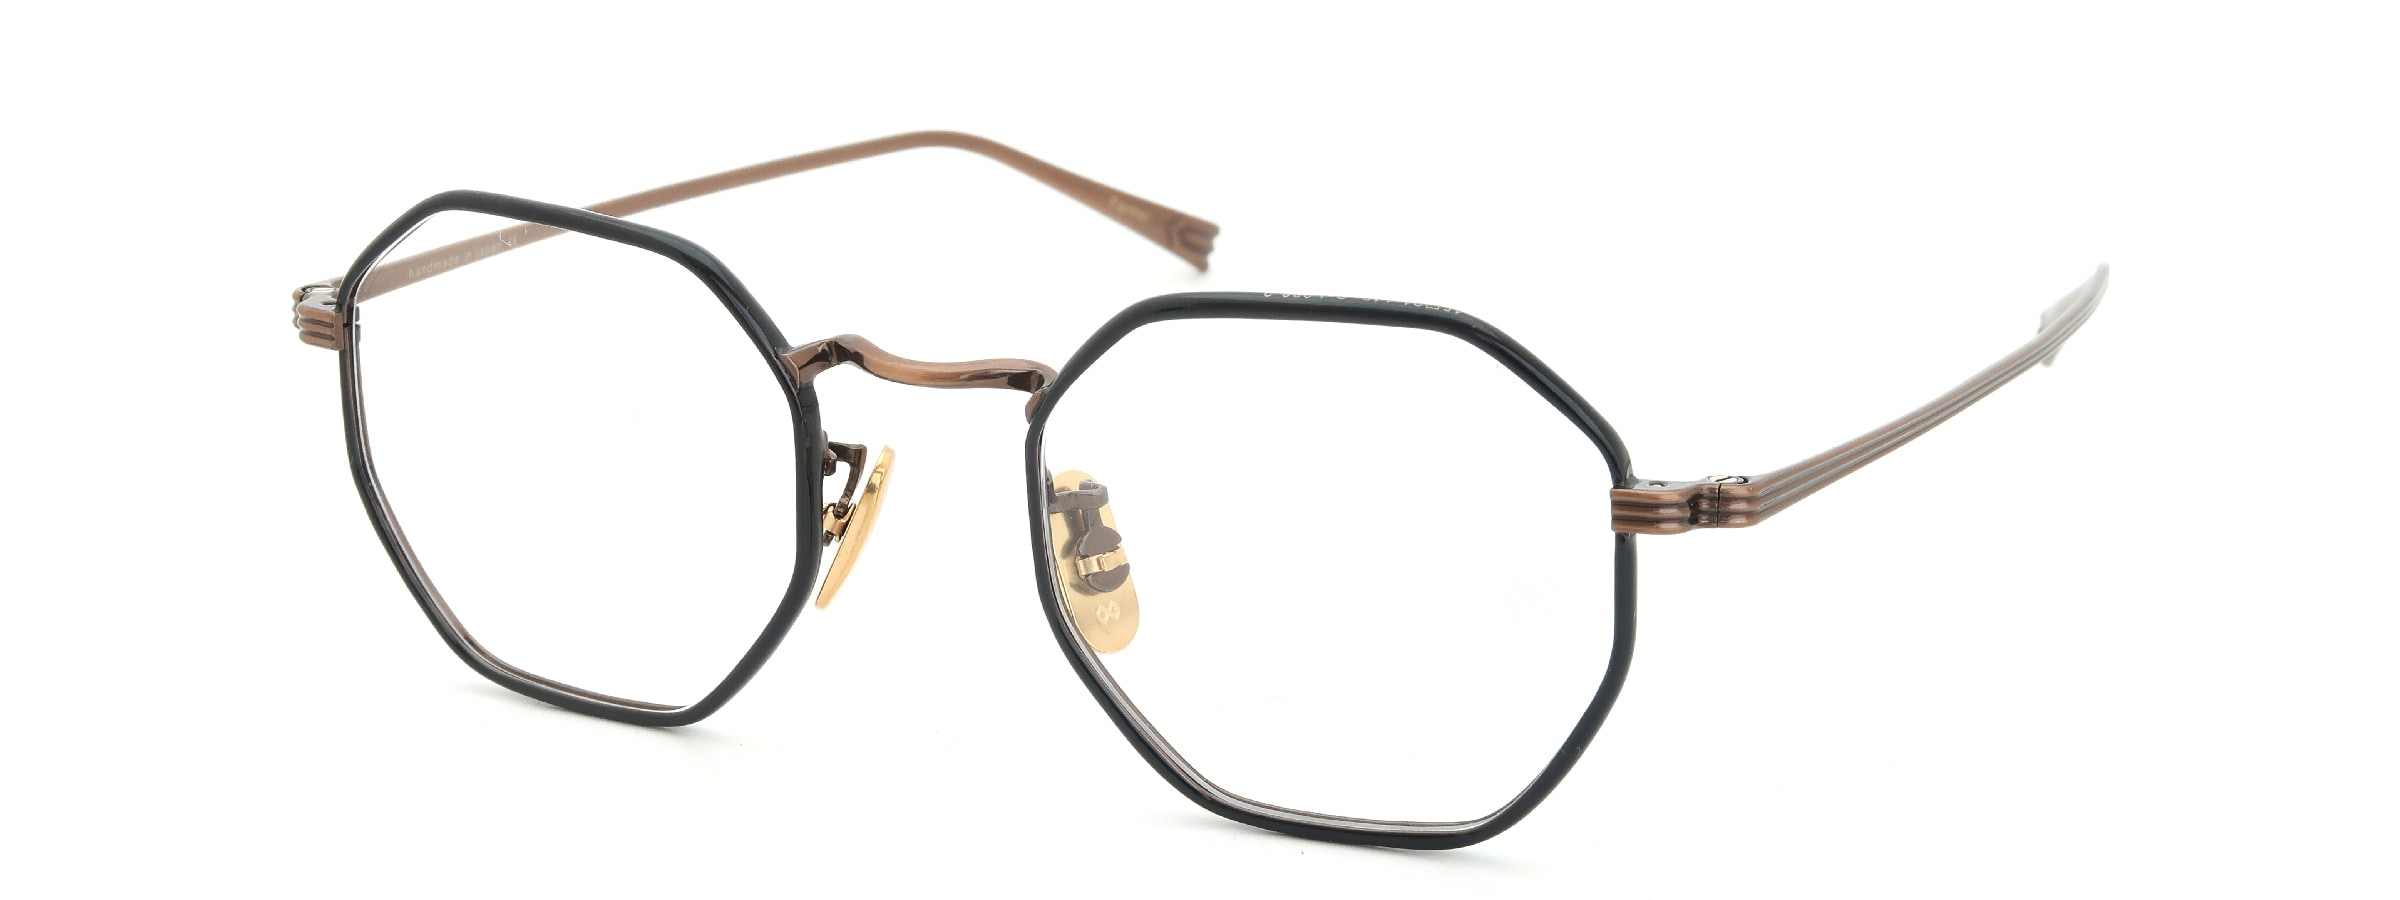 OG × OLIVER GOLDSMITH Farmer 45size ファーマー